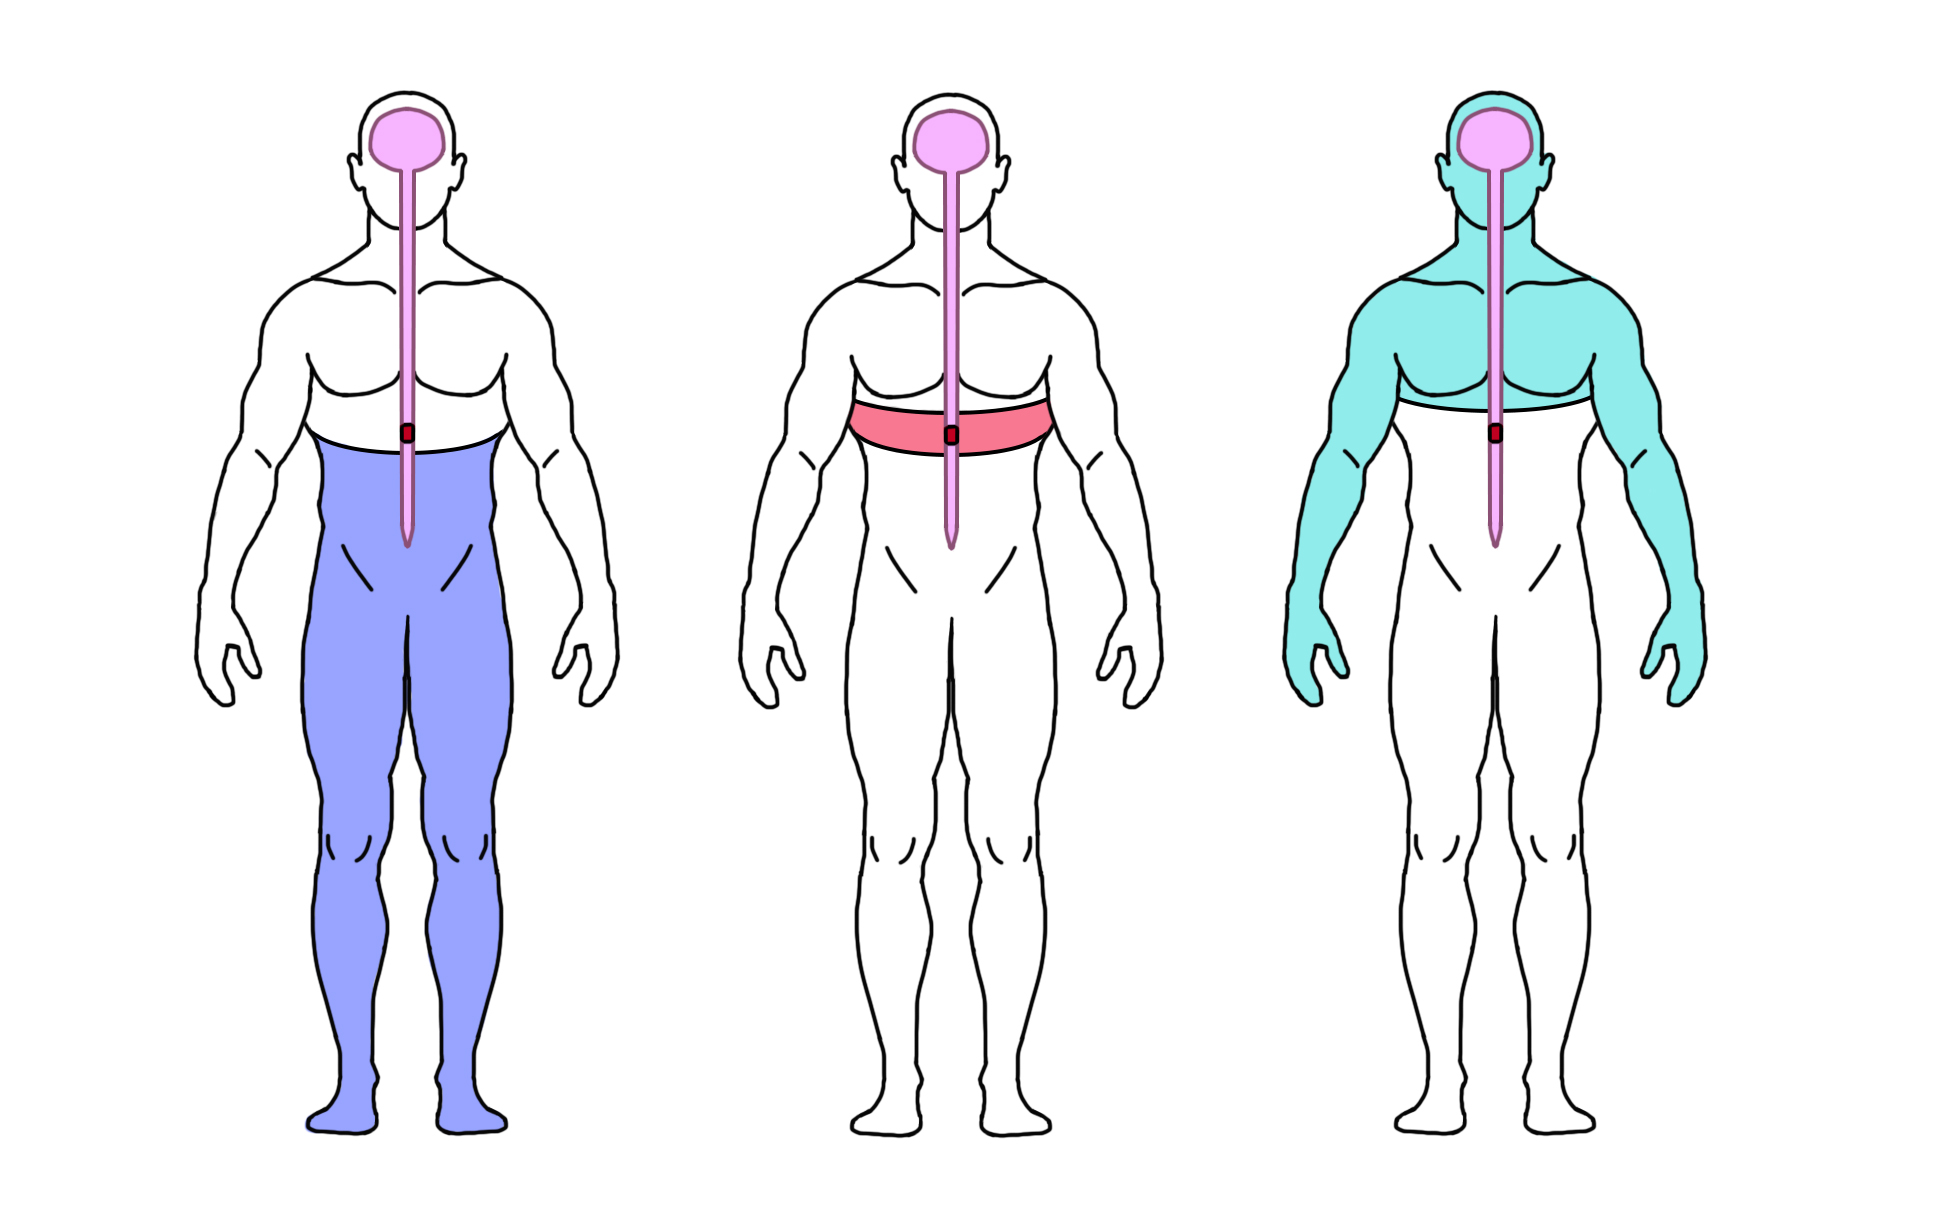 Three silhouettes of a person's body with a brain and spinal cord. Left image shows the bottom half of the body colored purple. Centre image shows a band around the middle of the body in red. Right image shows all the body above the centre, including the arms in green.